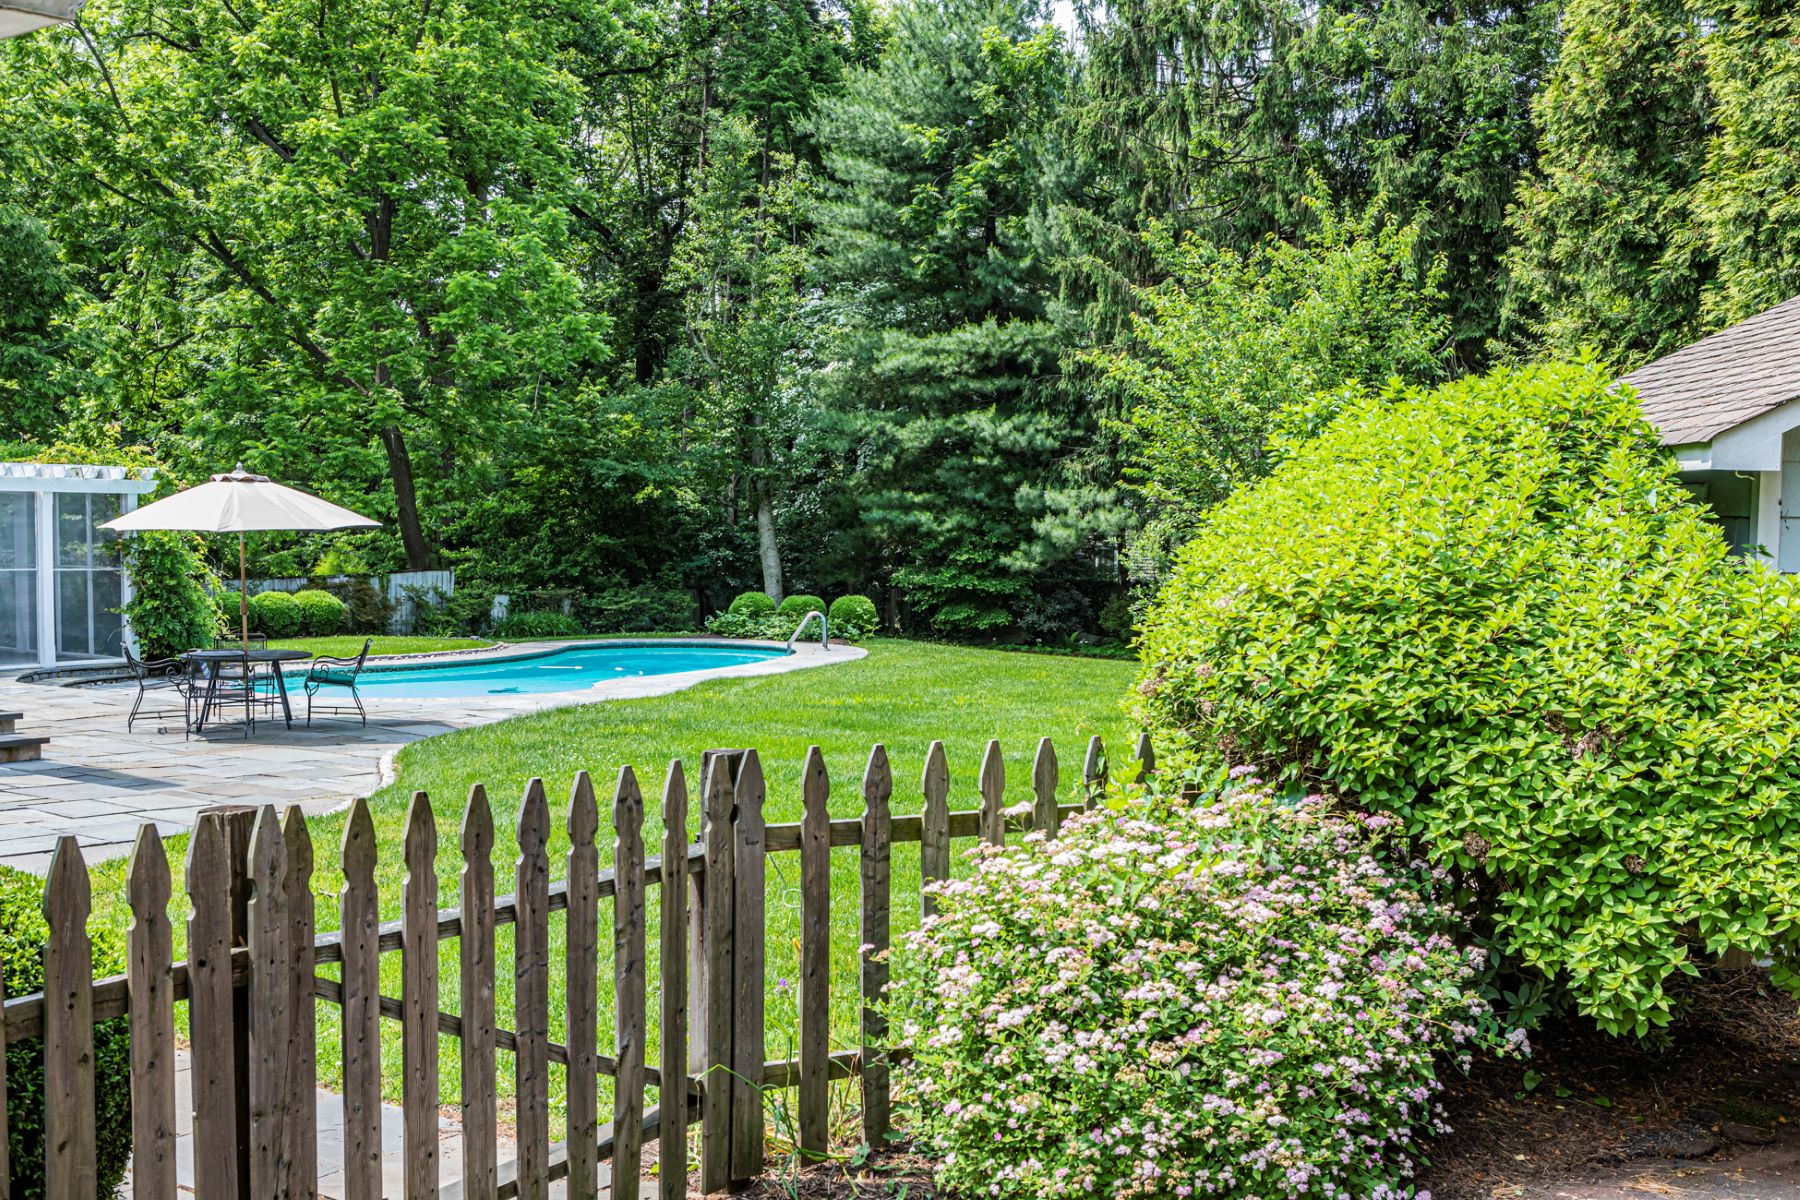 Additional photo for property listing at Institute Colonial, Picturesque from Every Angle 27 Olden Lane, Princeton, New Jersey 08540 United States